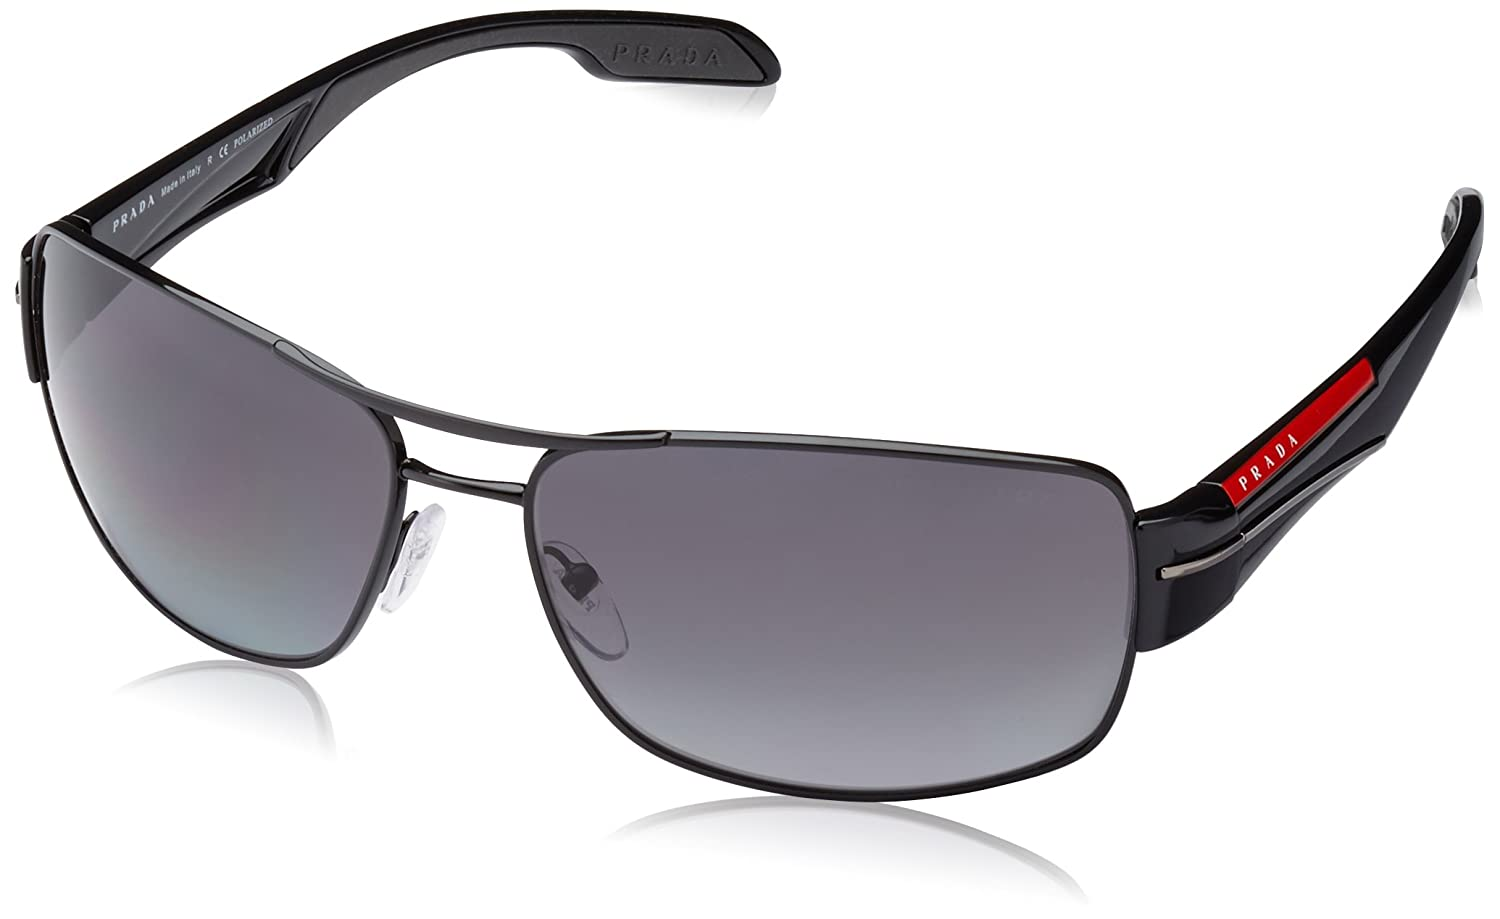 6071547e1ae Amazon.com  Prada Linea Rossa Men s PS 53NS Sunglasses Black   Polar Grey  Gradient 65mm  Prada  Shoes